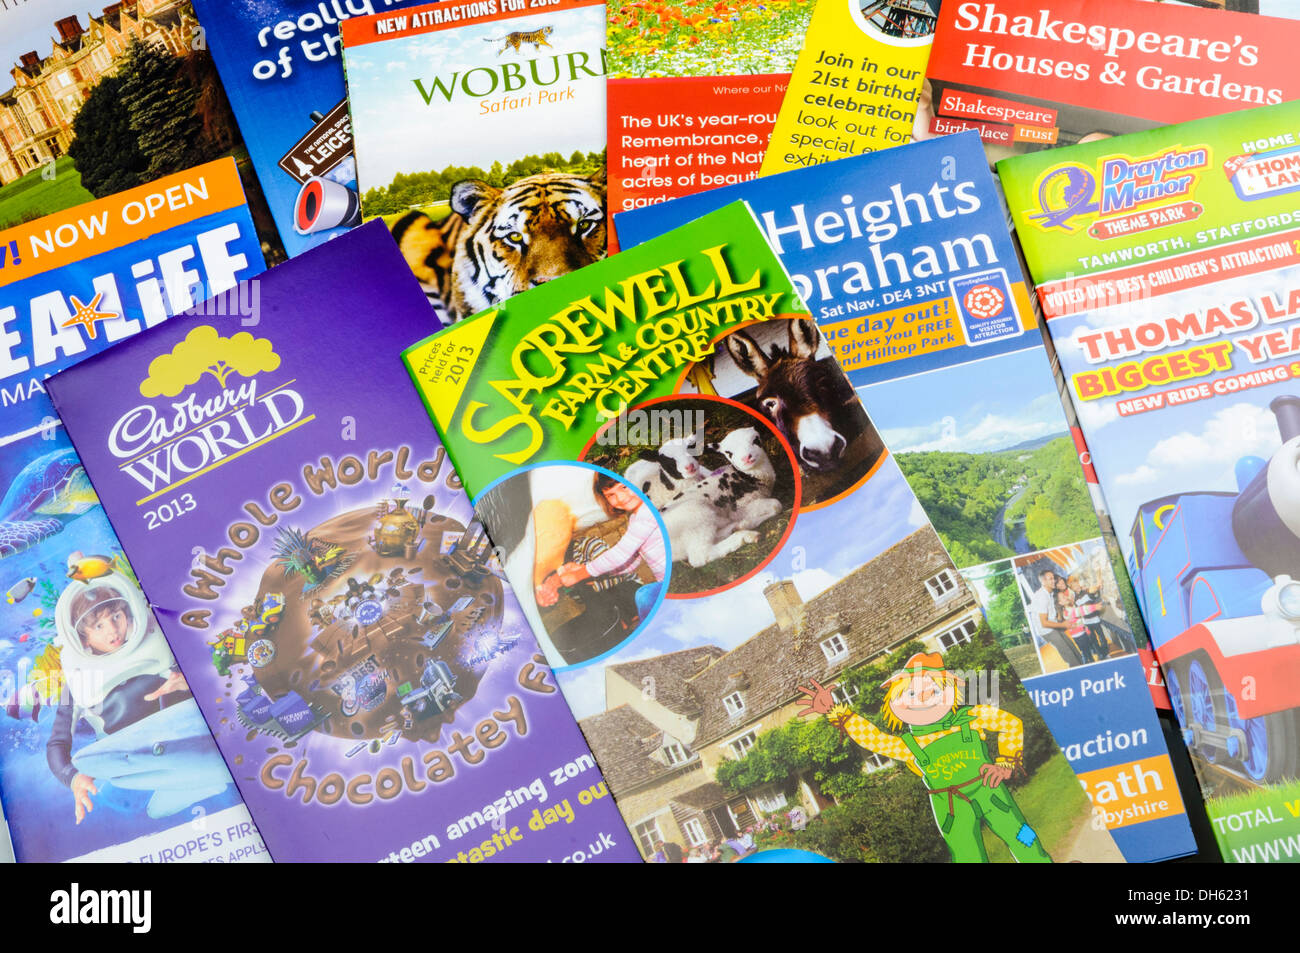 Tourist brochures for the midlands of England including Cadbury World, Woburn Safari Park - Stock Image